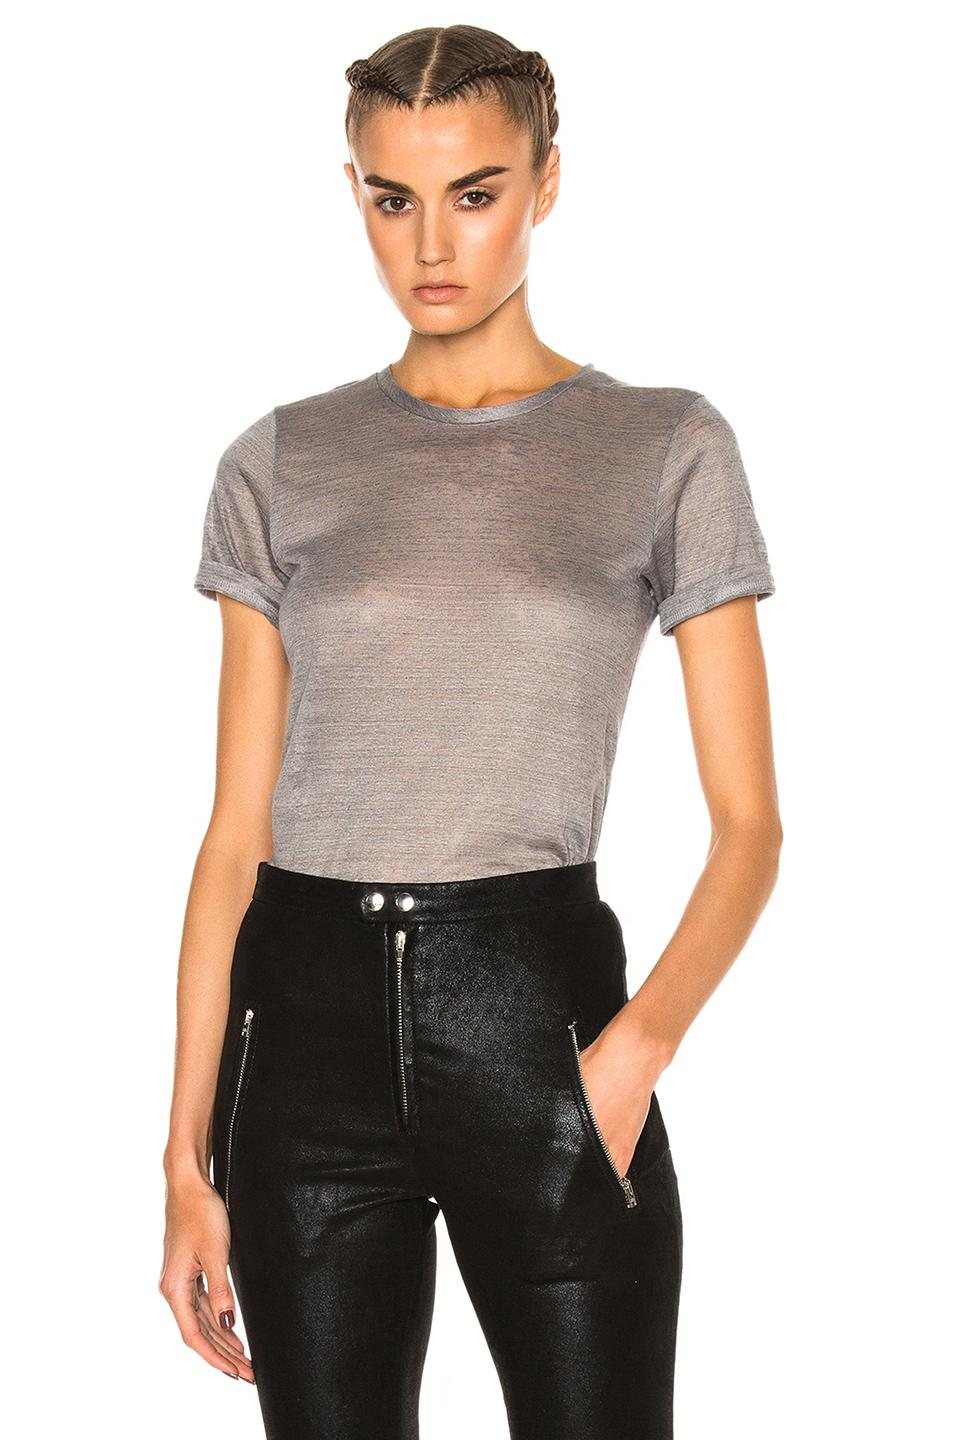 Isabel marant madras tee in gray lyst for Isabel marant t shirt sale